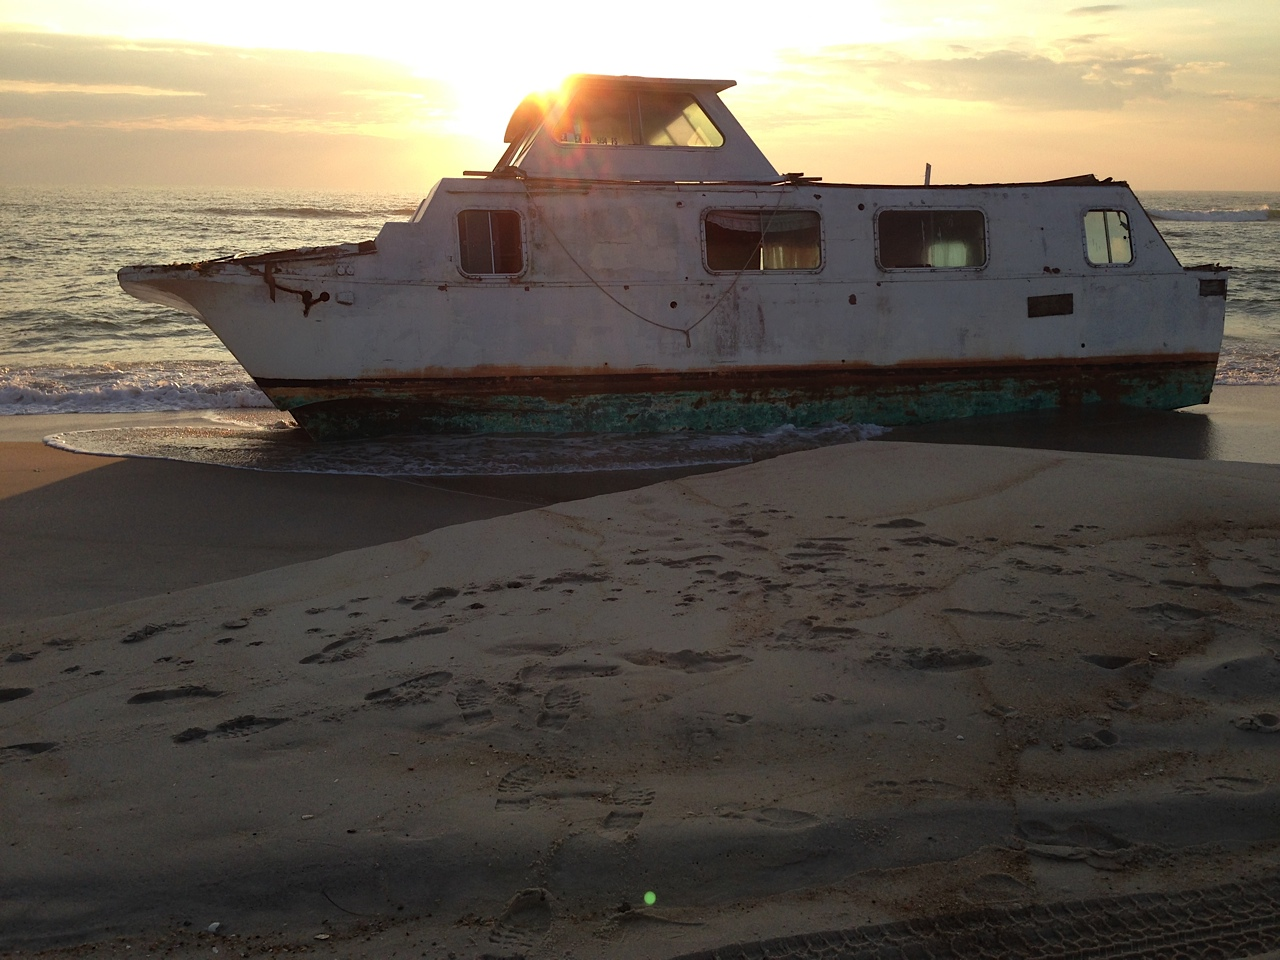 Local residents and artists Kirk McBride and Lynne Lockhart came upon this 40-foot houseboat on Thursday morning during a walk along the beach on Assateague Island's OSV area. Photo by Kirk McBride